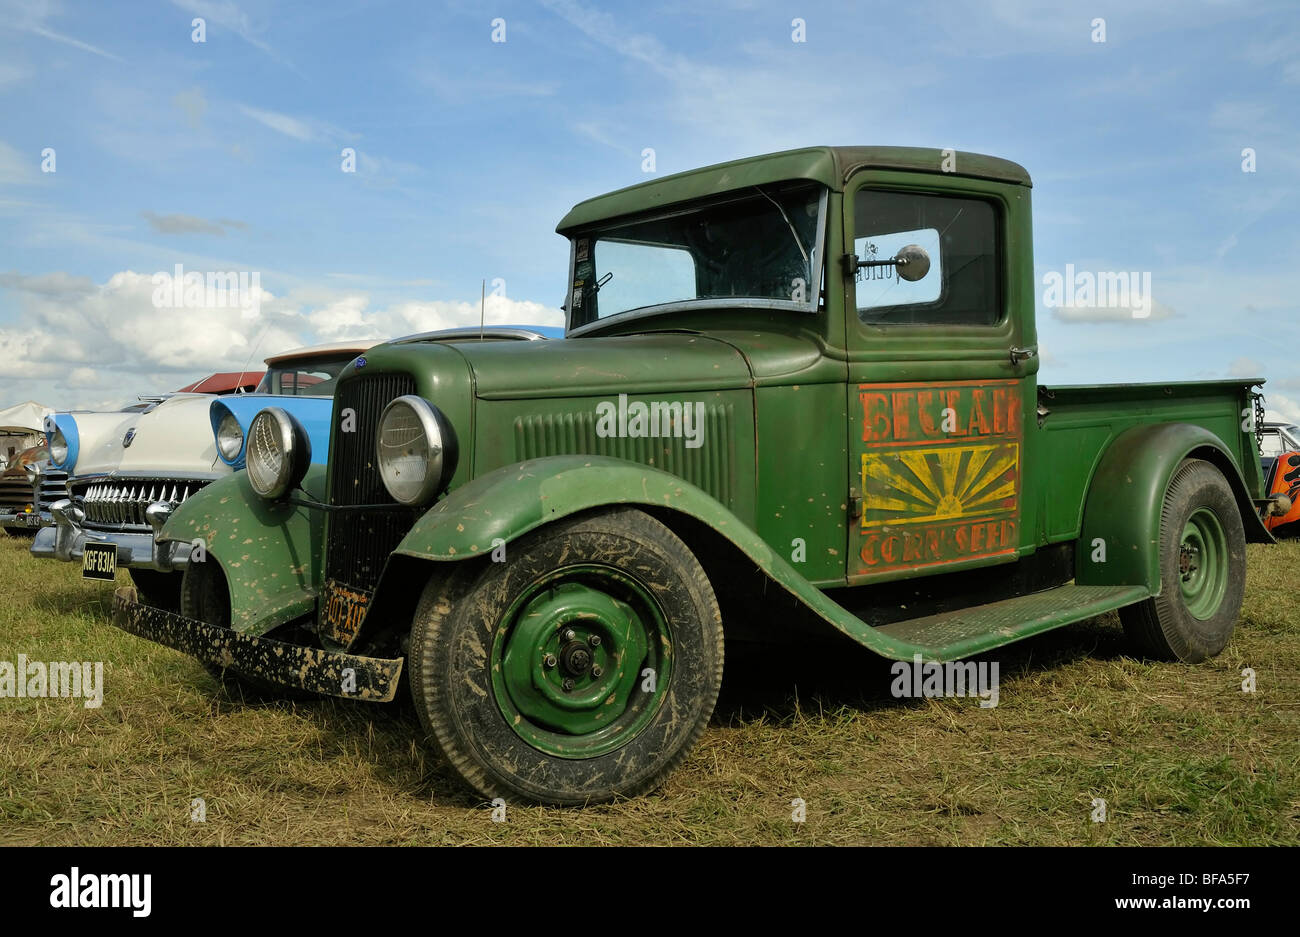 1932 Ford Model B Pickup Truck Stock Photo: 26654075 - Alamy